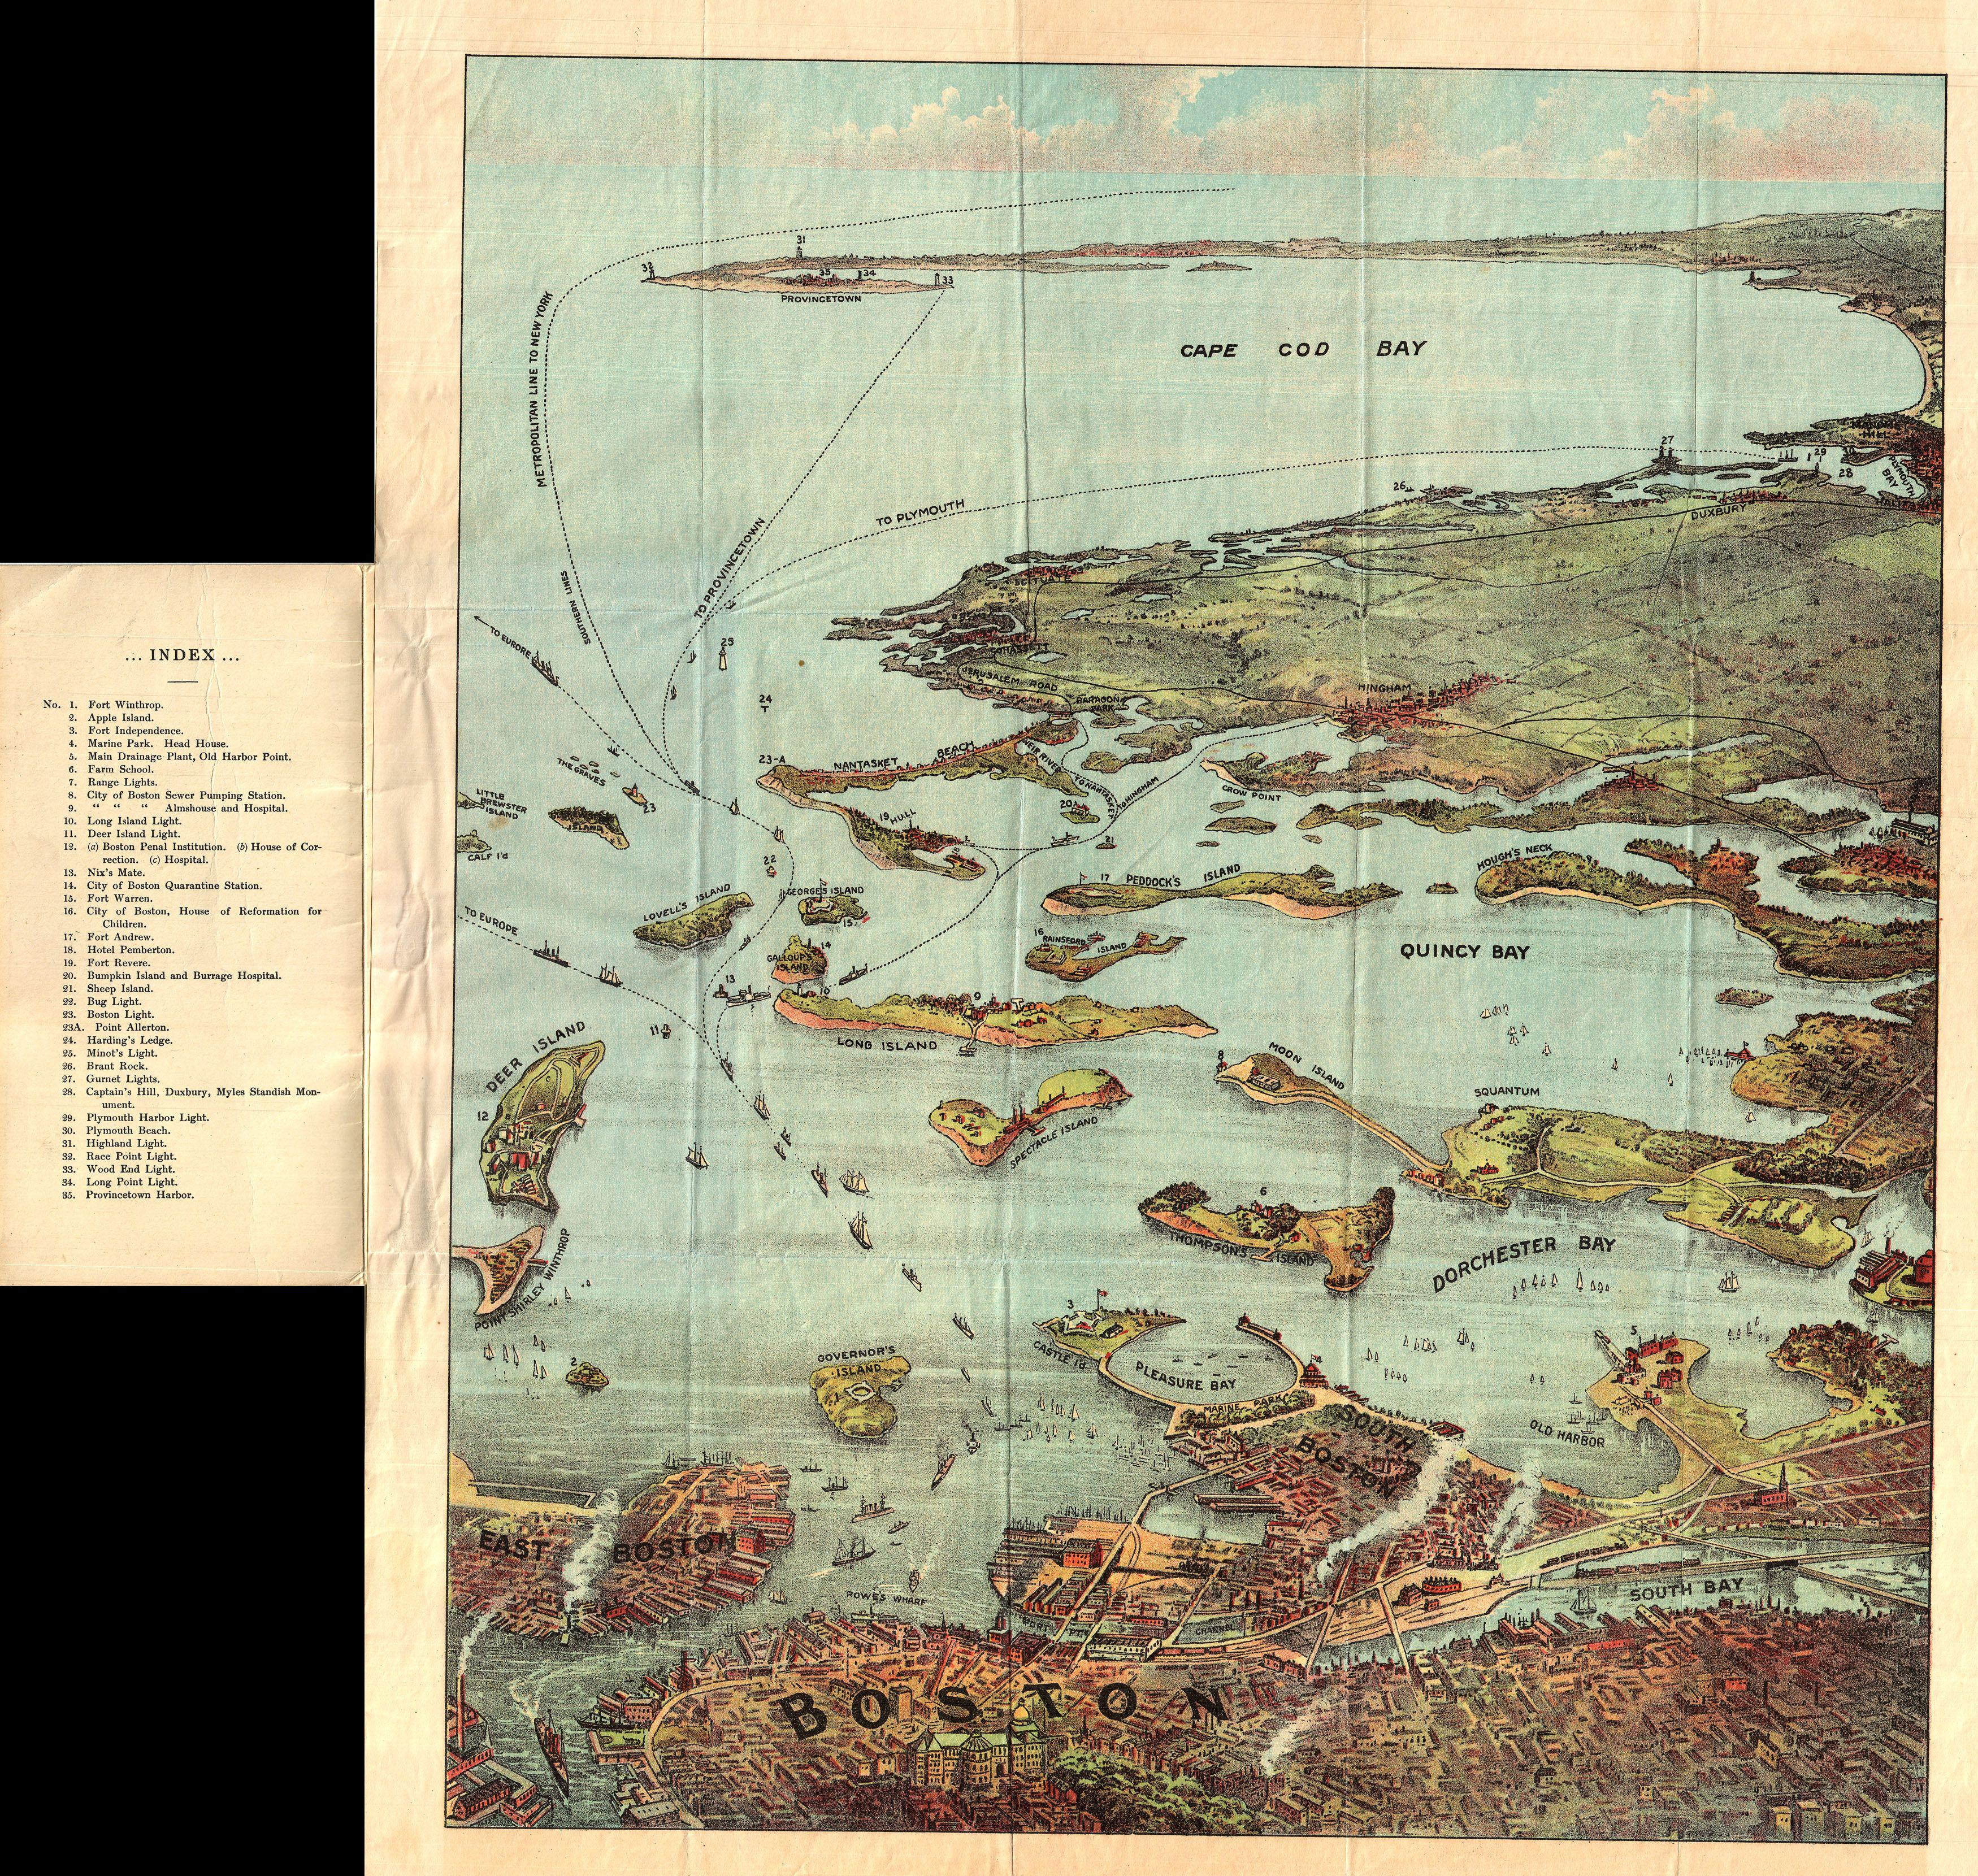 boston and cape cod map File 1890 View Map Of Boston Habor From Boston To Cape Cod And boston and cape cod map